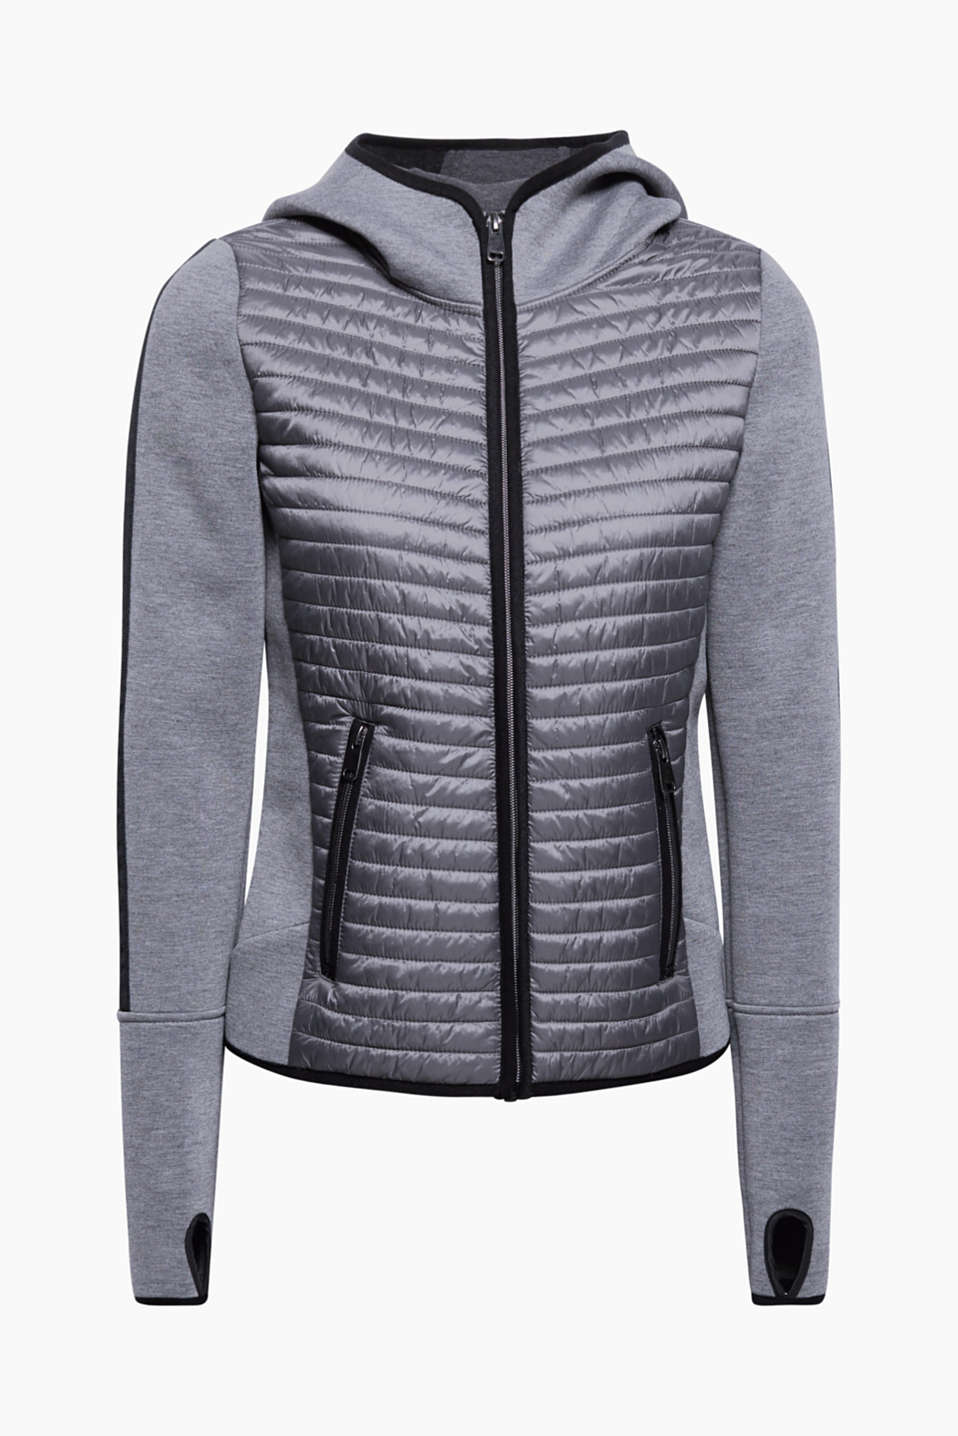 This hooded jacket in firm jersey with a quilted front and back is perfect for between the seasons!